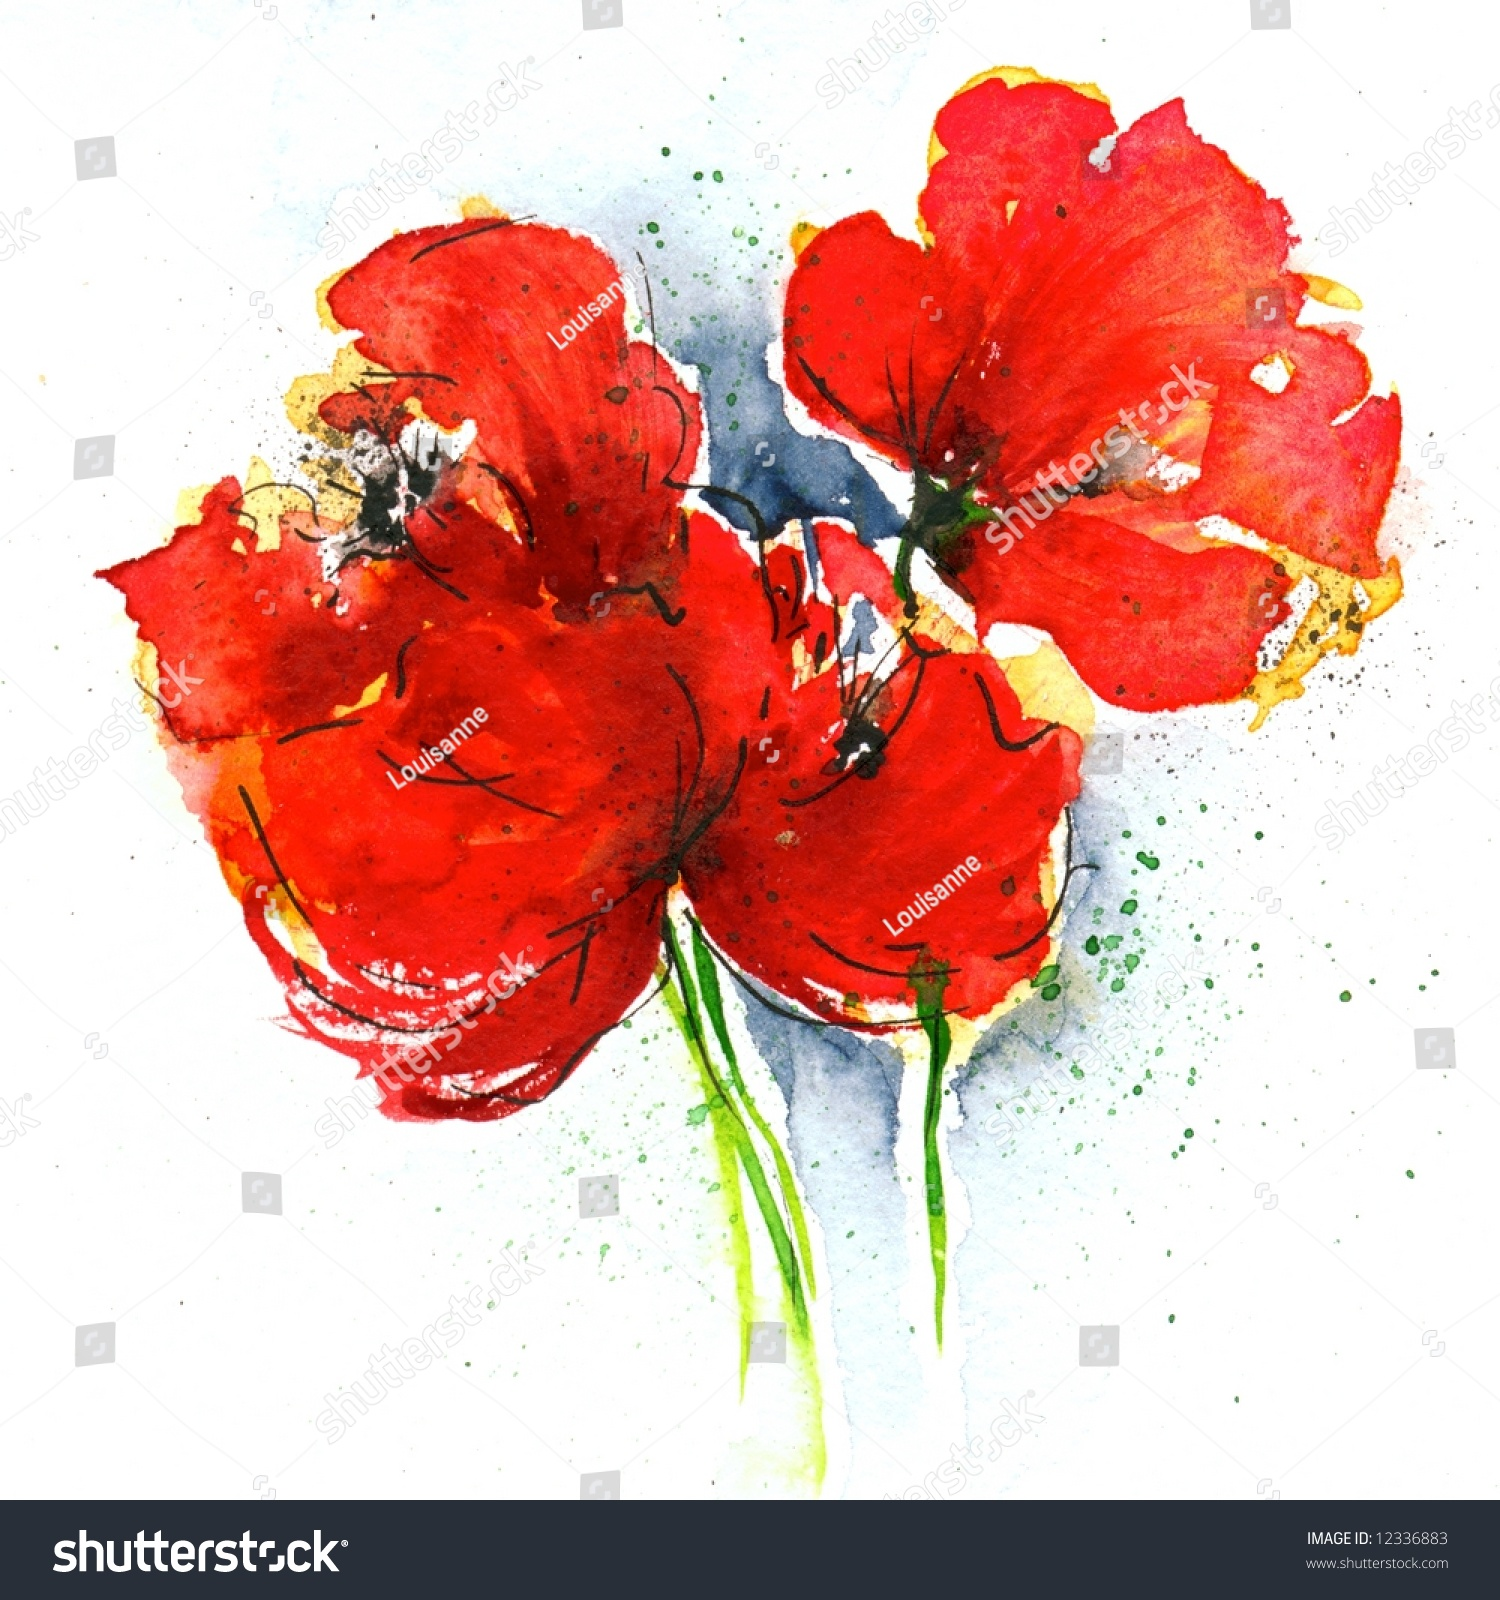 Floral painted poppy illustration on white stock illustration floral painted poppy illustration on white background ink and watercolor painting art is created mightylinksfo